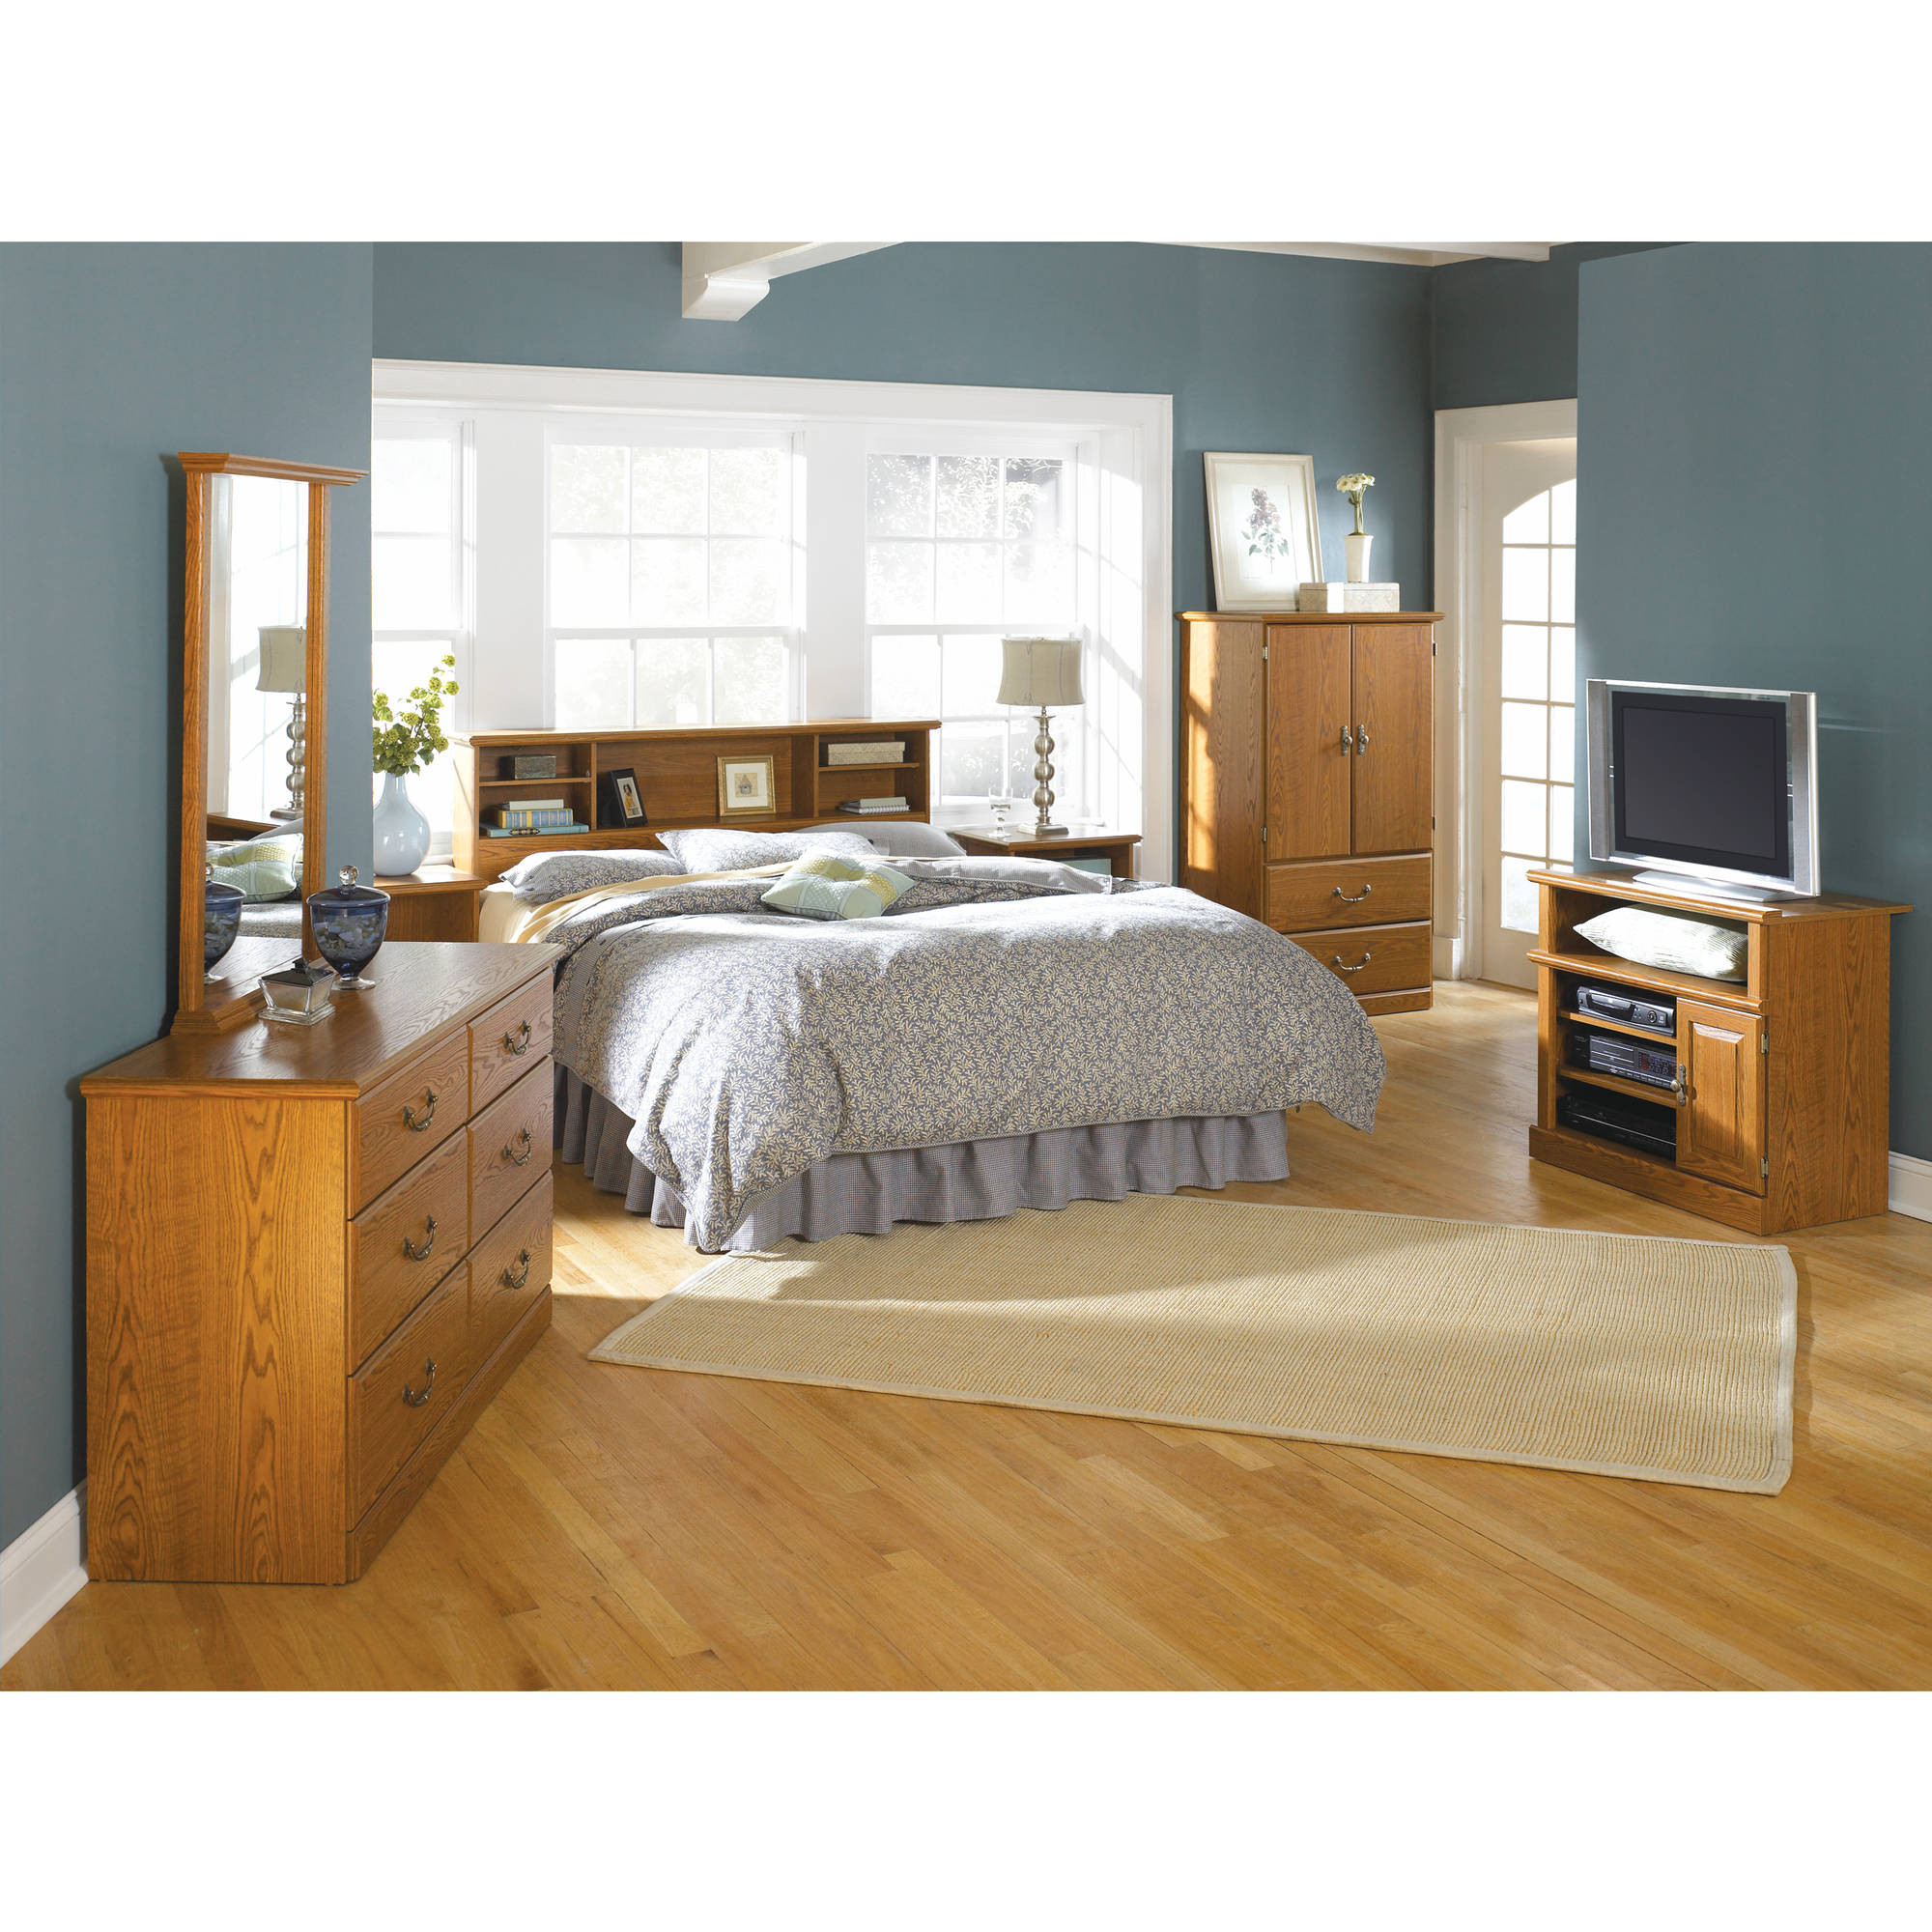 Best ideas about Walmart Bedroom Sets . Save or Pin Sauder Orchard Hills Bedroom Furniture Collection Now.